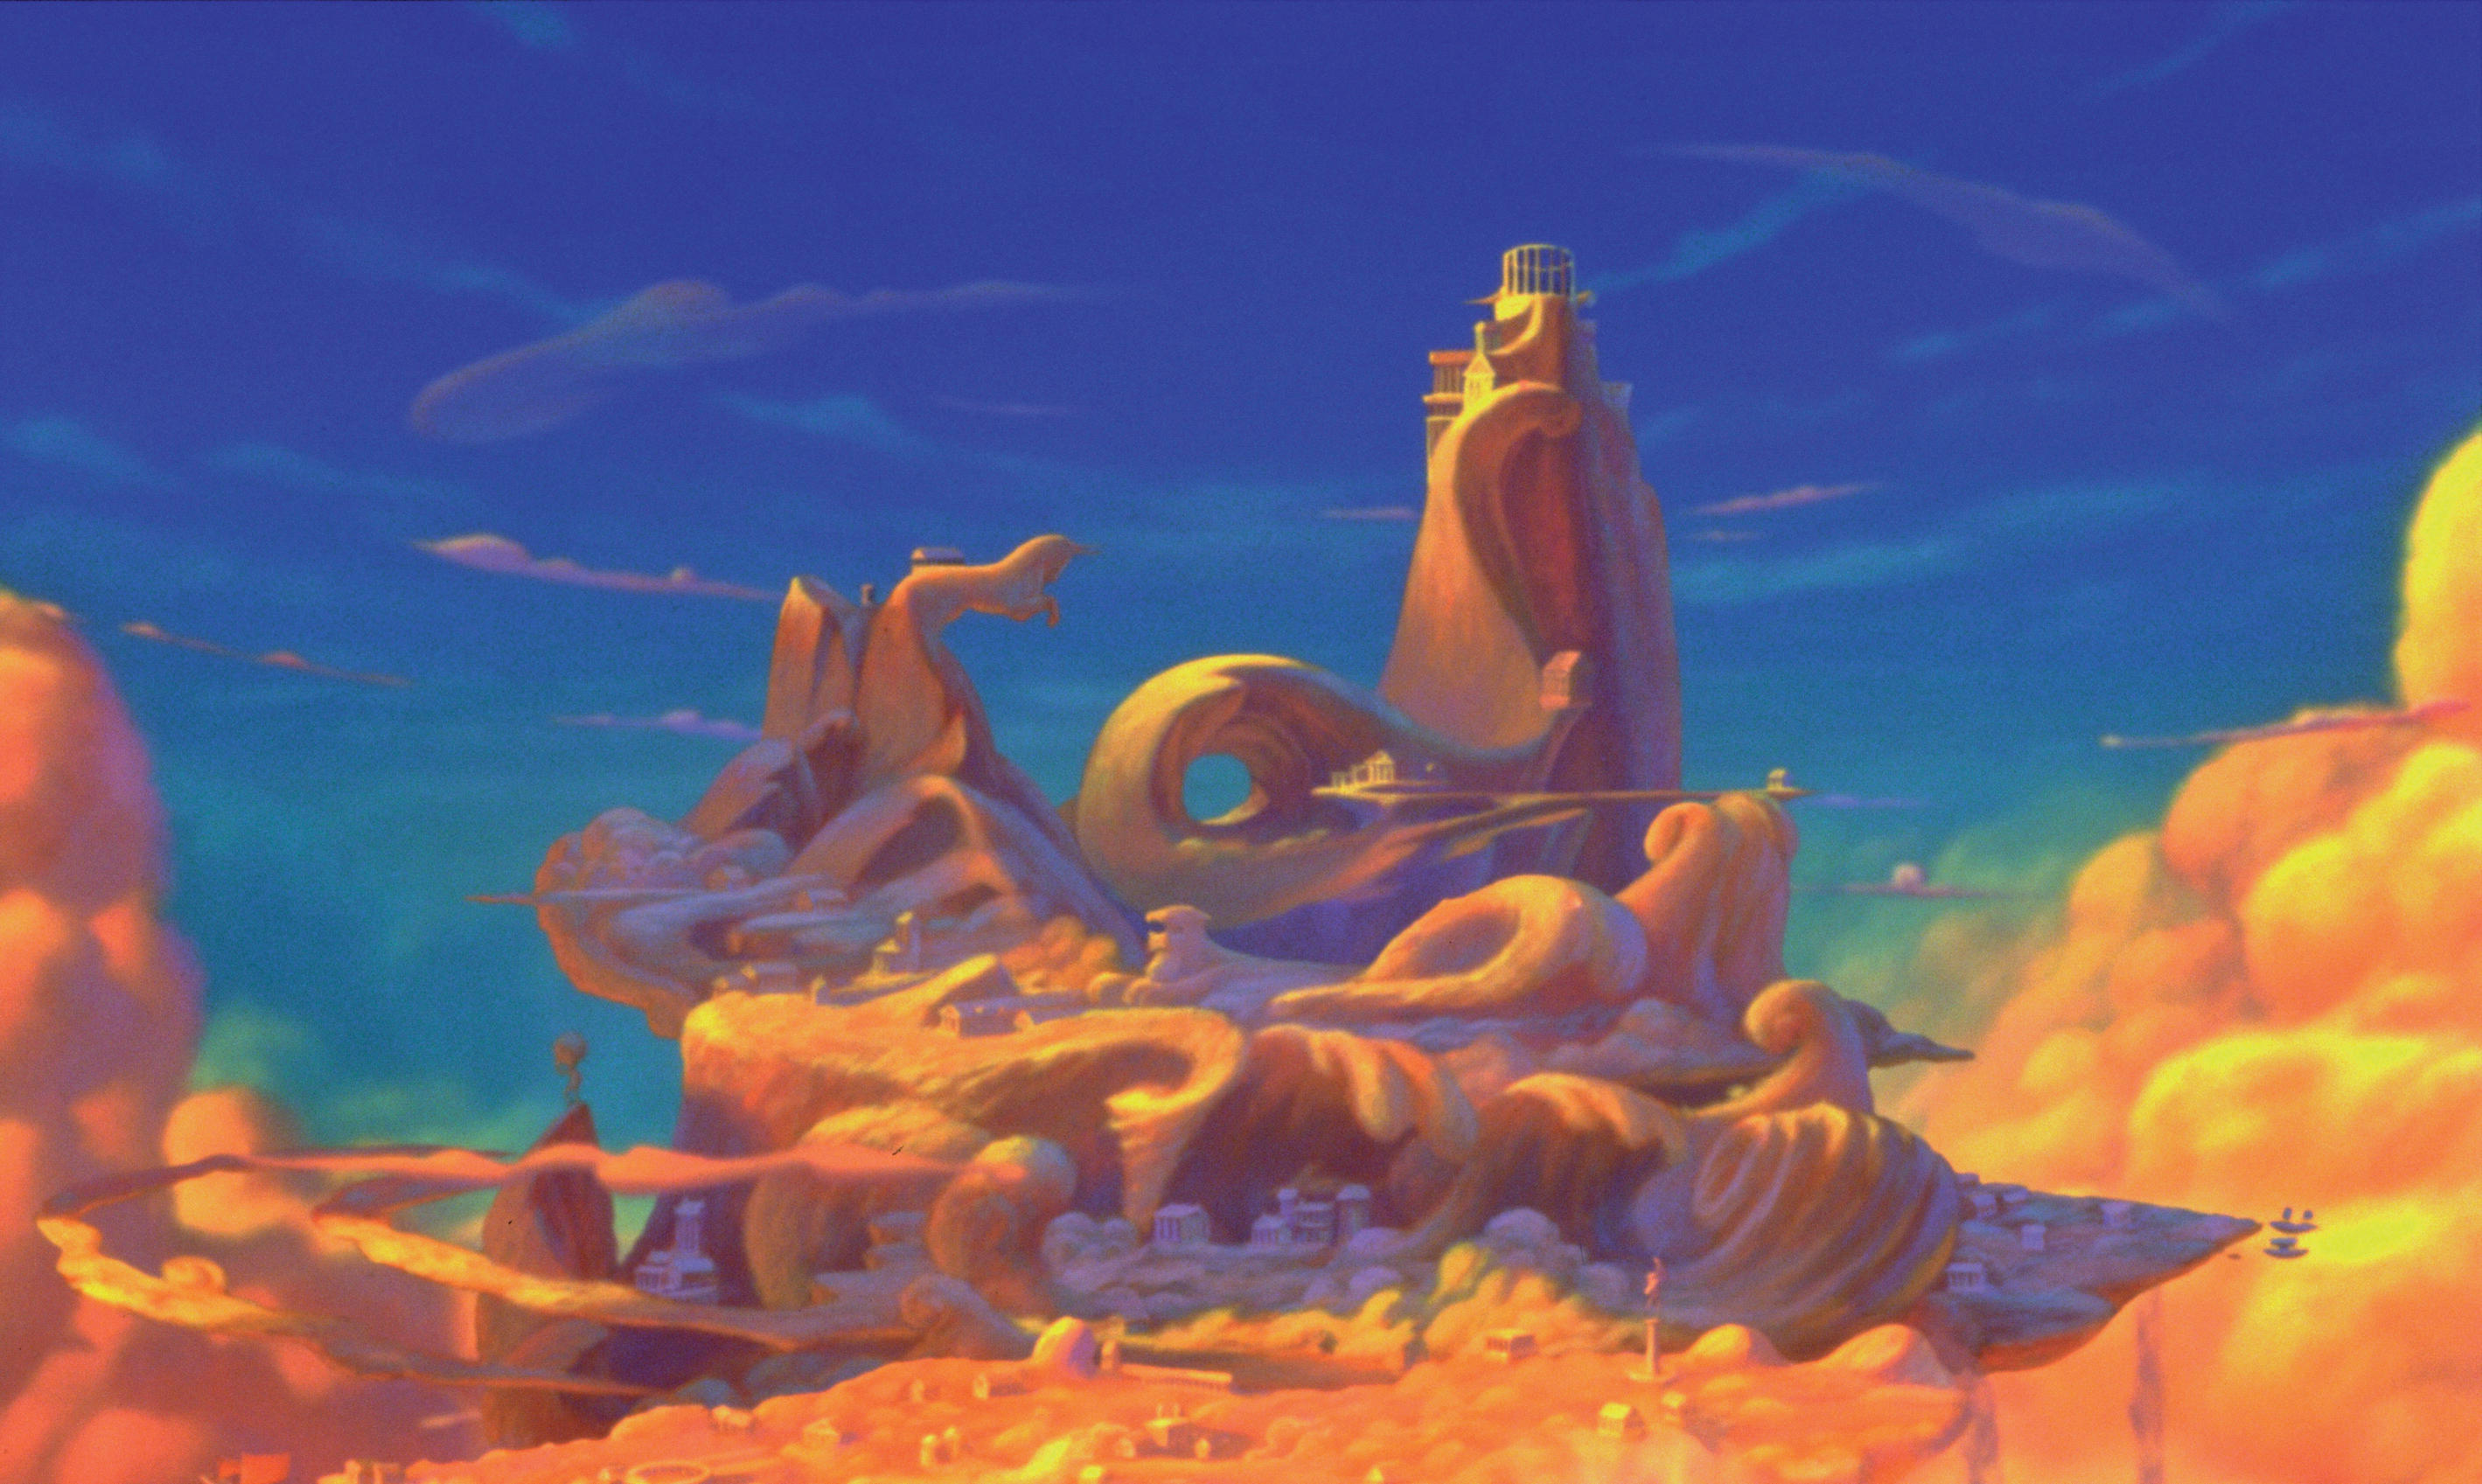 Hercules wallpapers high quality download free